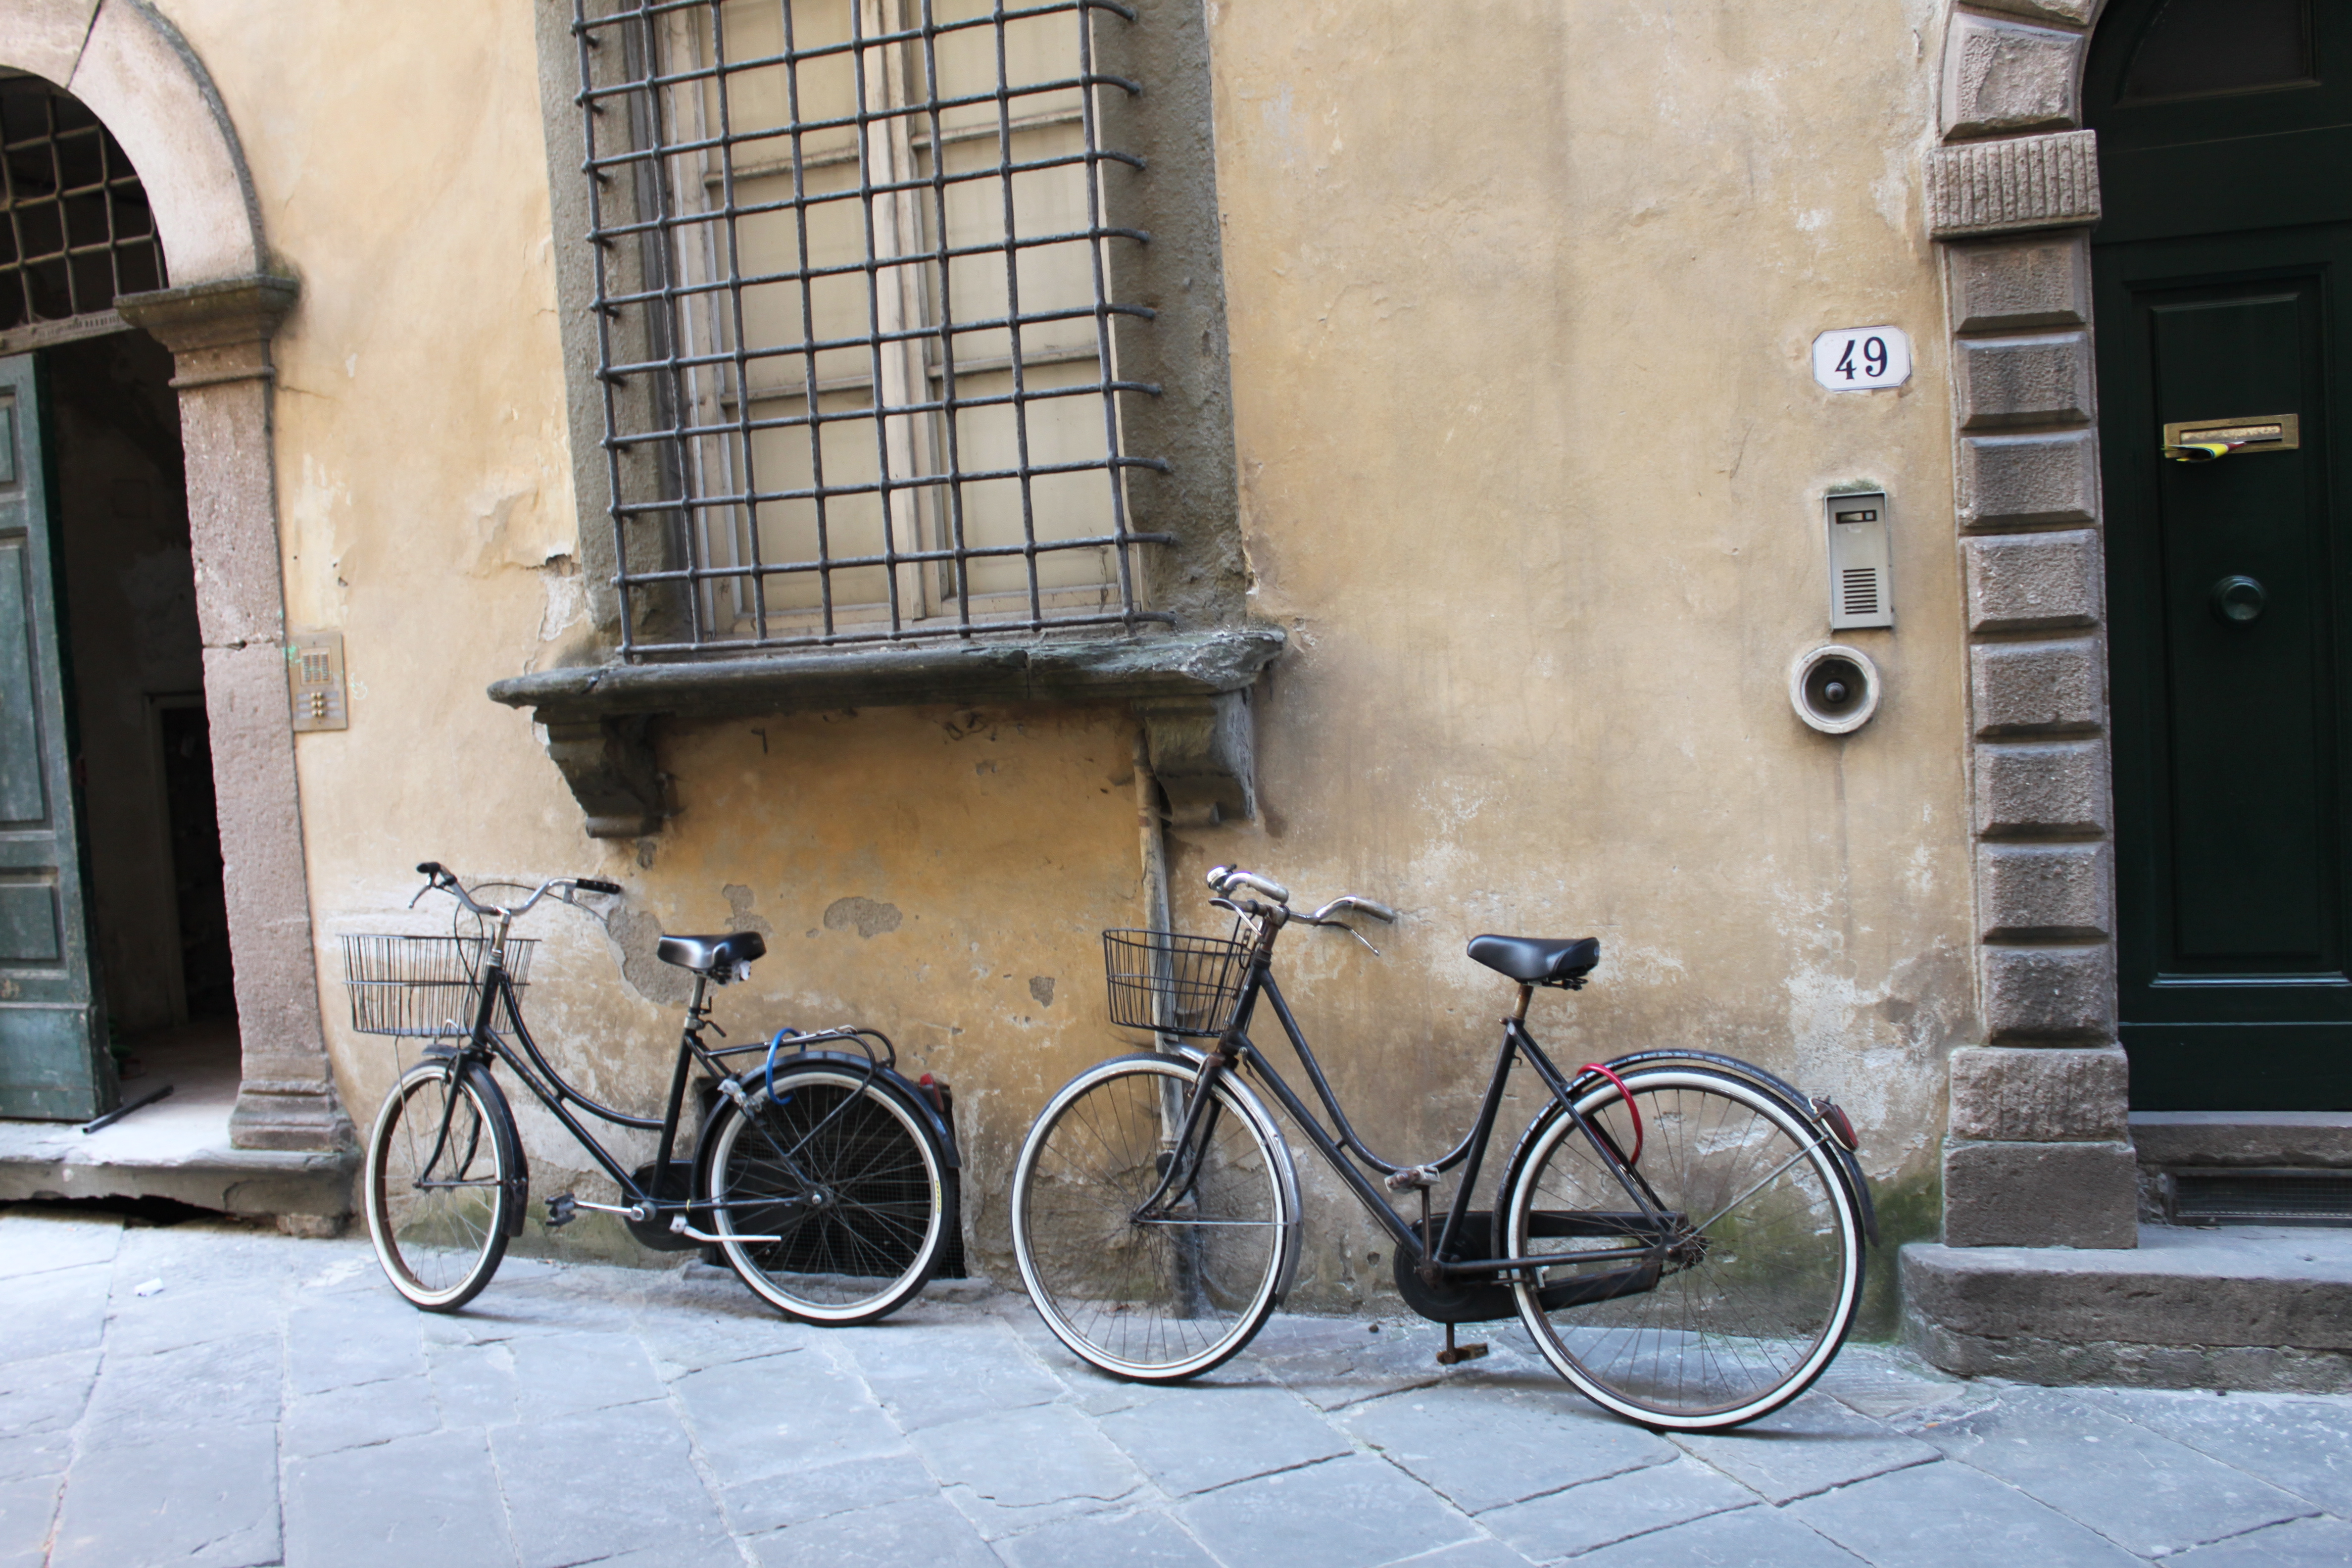 Bikes in Italy - bikes, bikes, everywhere!